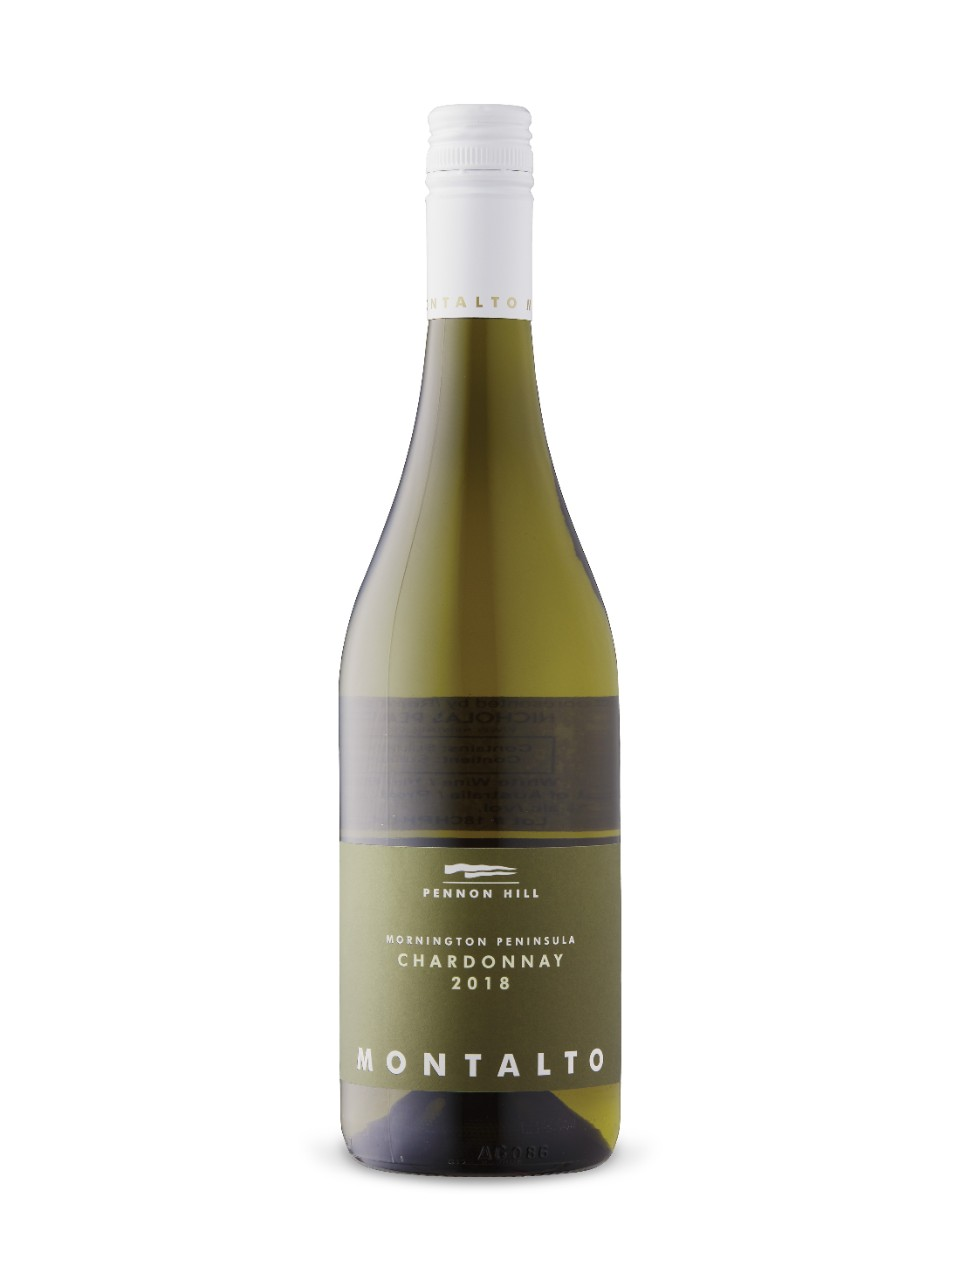 Montalto Pennon Hill Chardonnay 2018 from LCBO